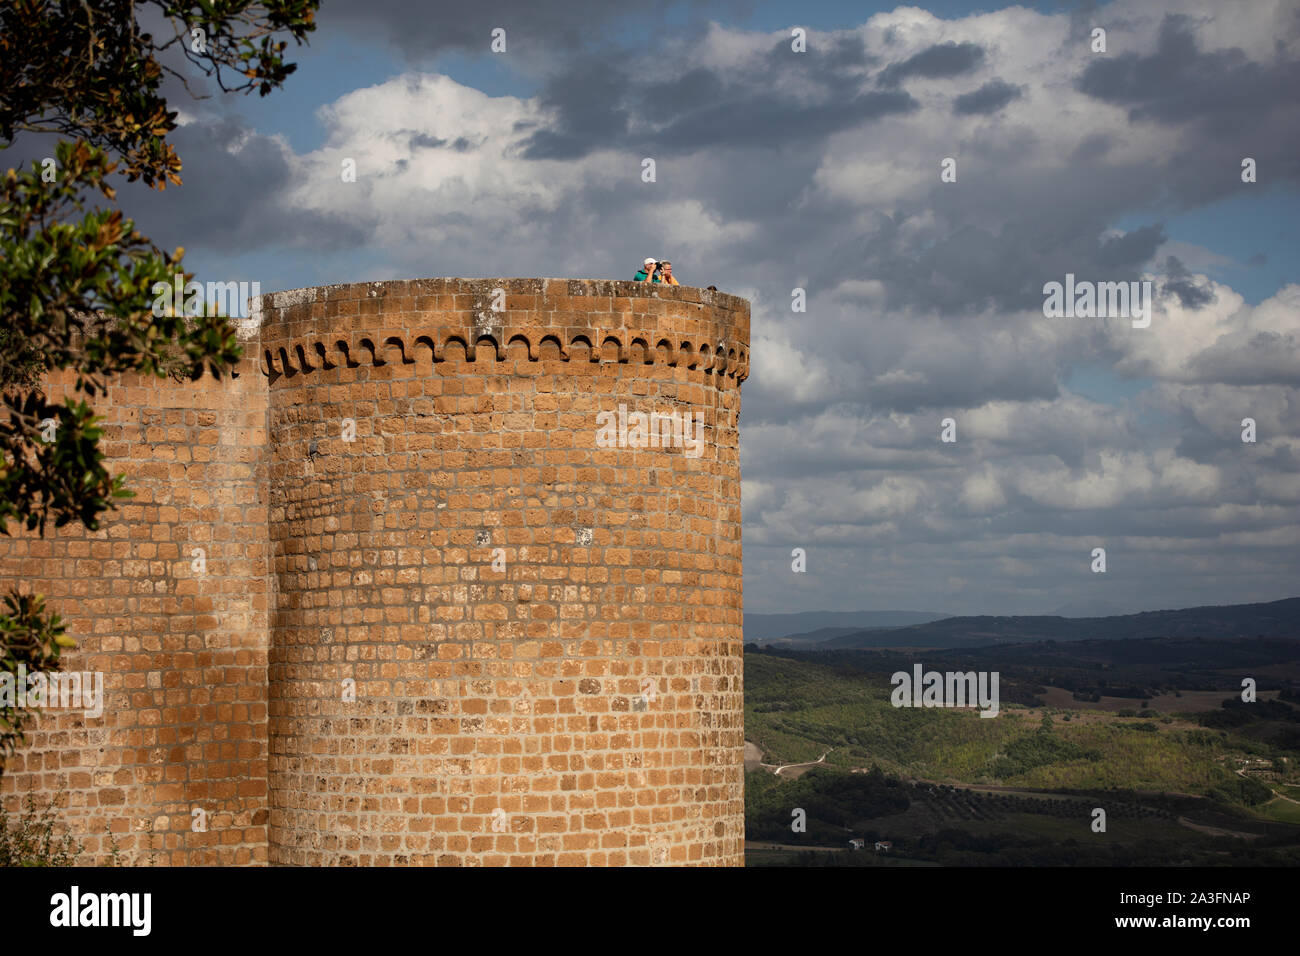 Tourists taking a picture from the top of a tower in the Fortezza Albornoz in Orvieto on a cloudy summer evening. Stock Photo